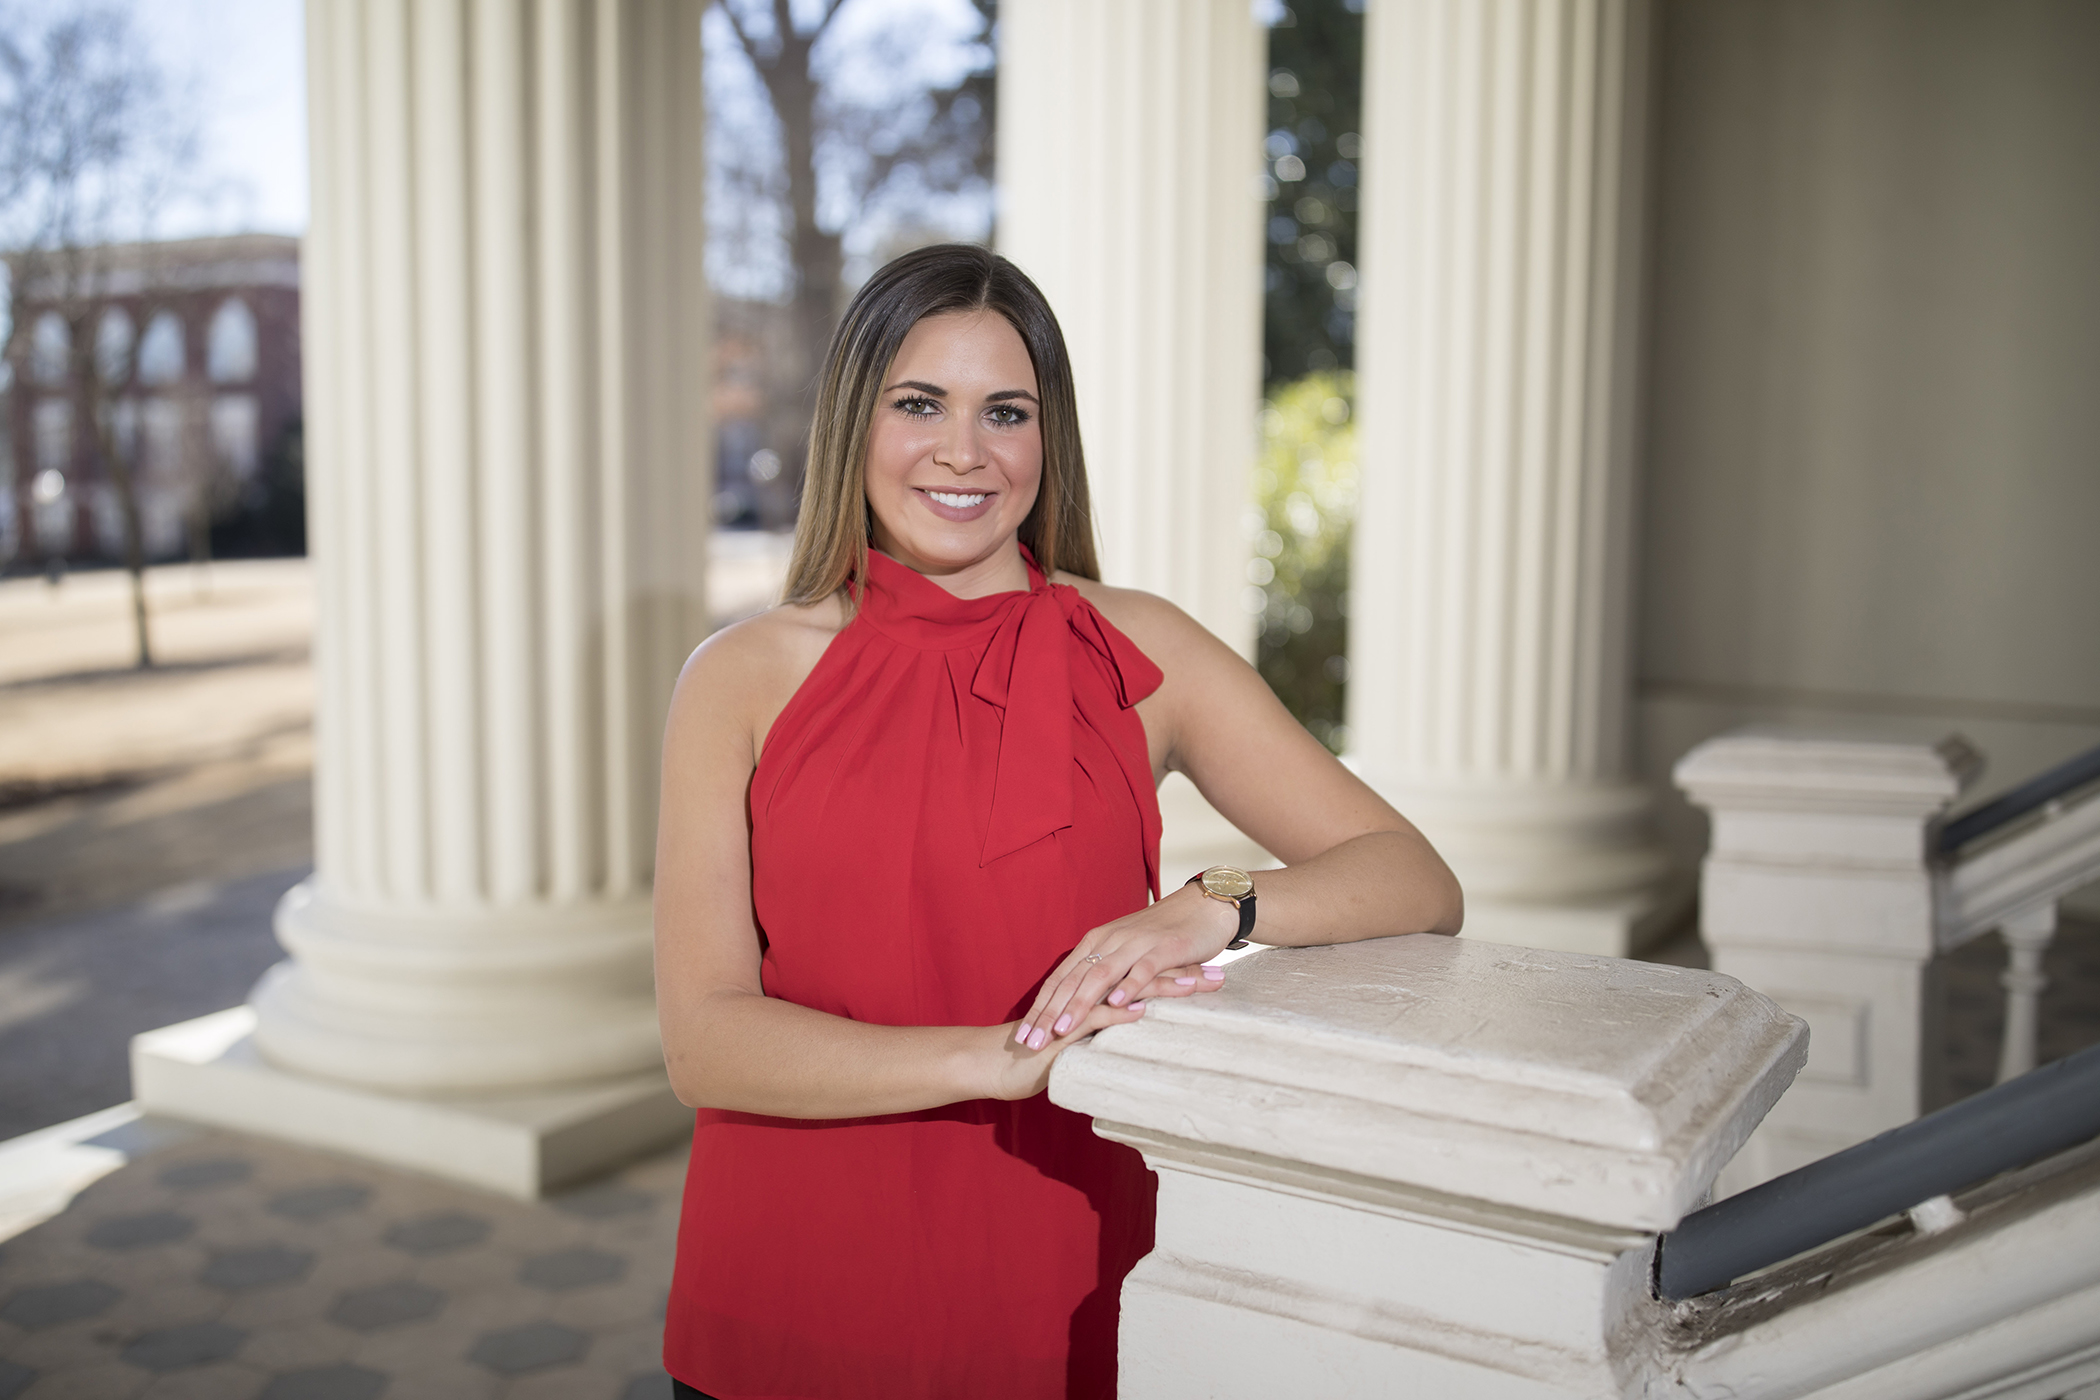 All About Lizzie 2012 lizzy isgar - uga today